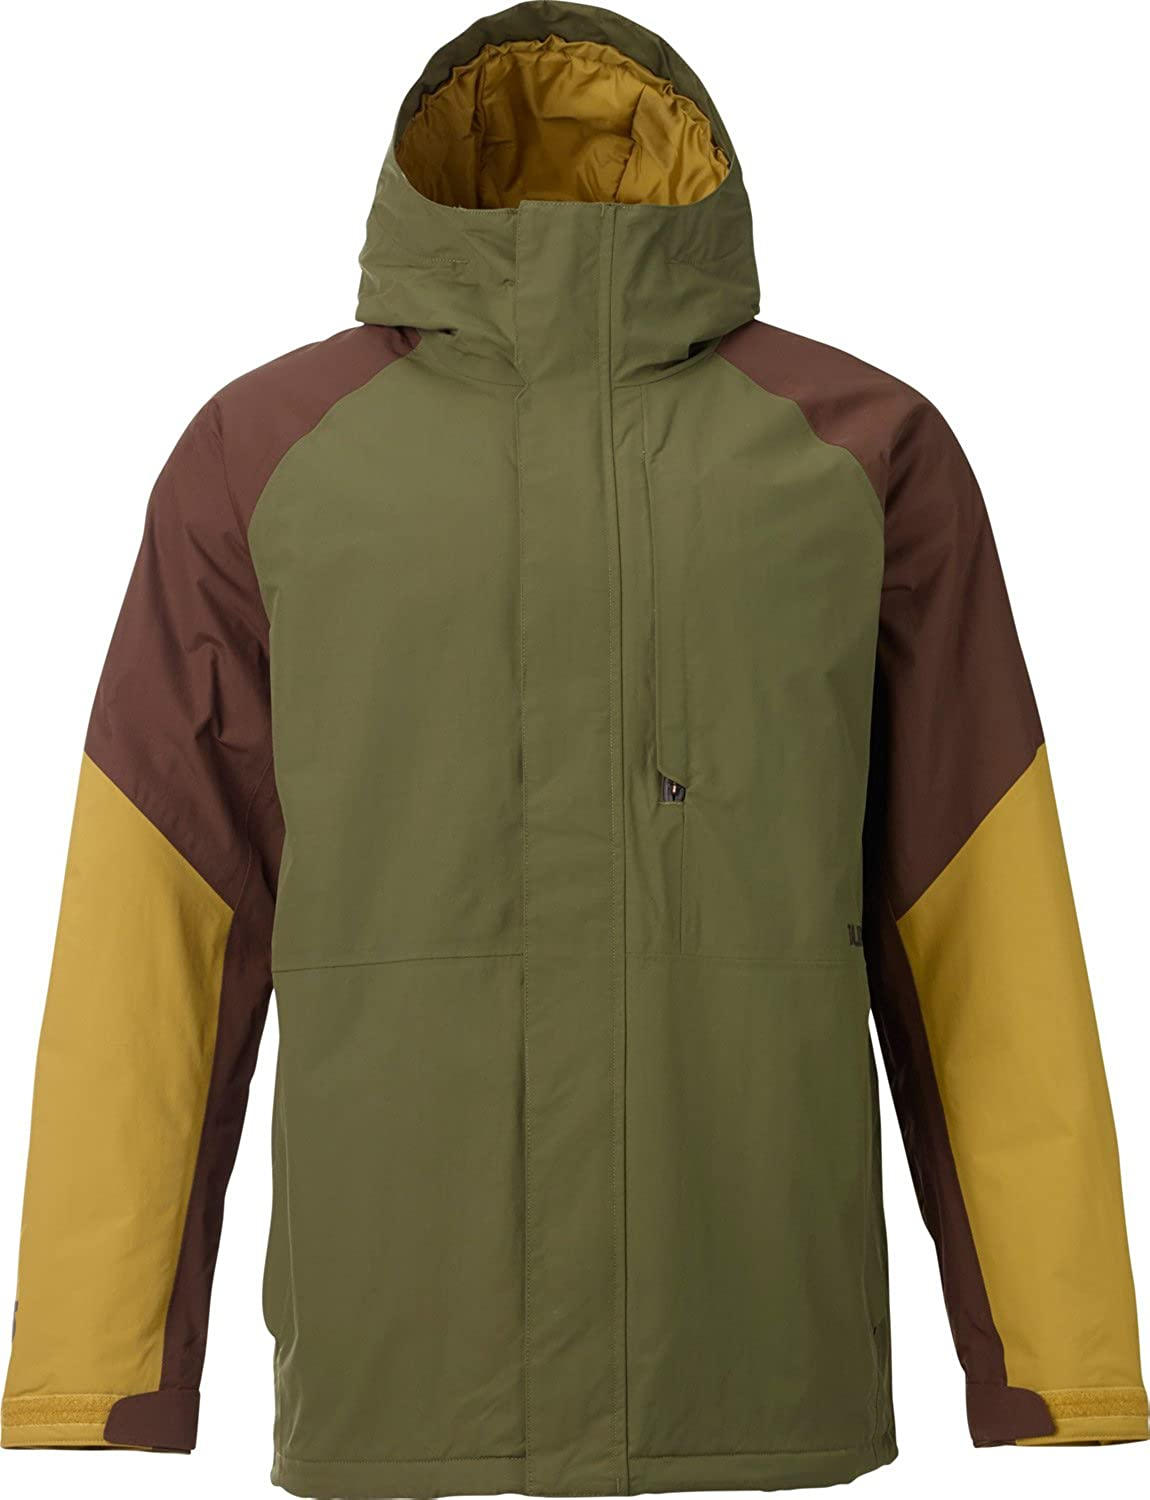 Burton Hilltop Jacket Men's